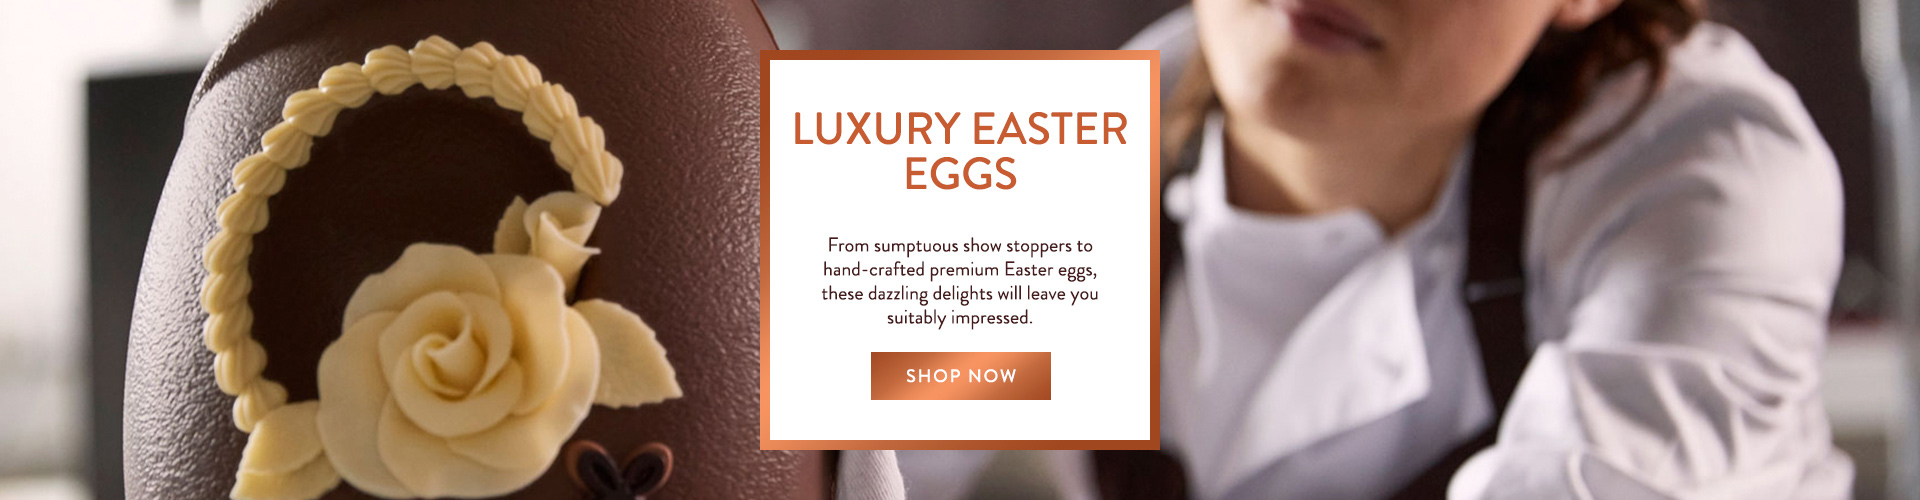 Intricately embellished with chocolate petals, this beautiful Easter gift has been exquisitely crafted by hand. Adorned with a showstopping combination of delicious milk and white chocolate, it's sure to impress your loved one.